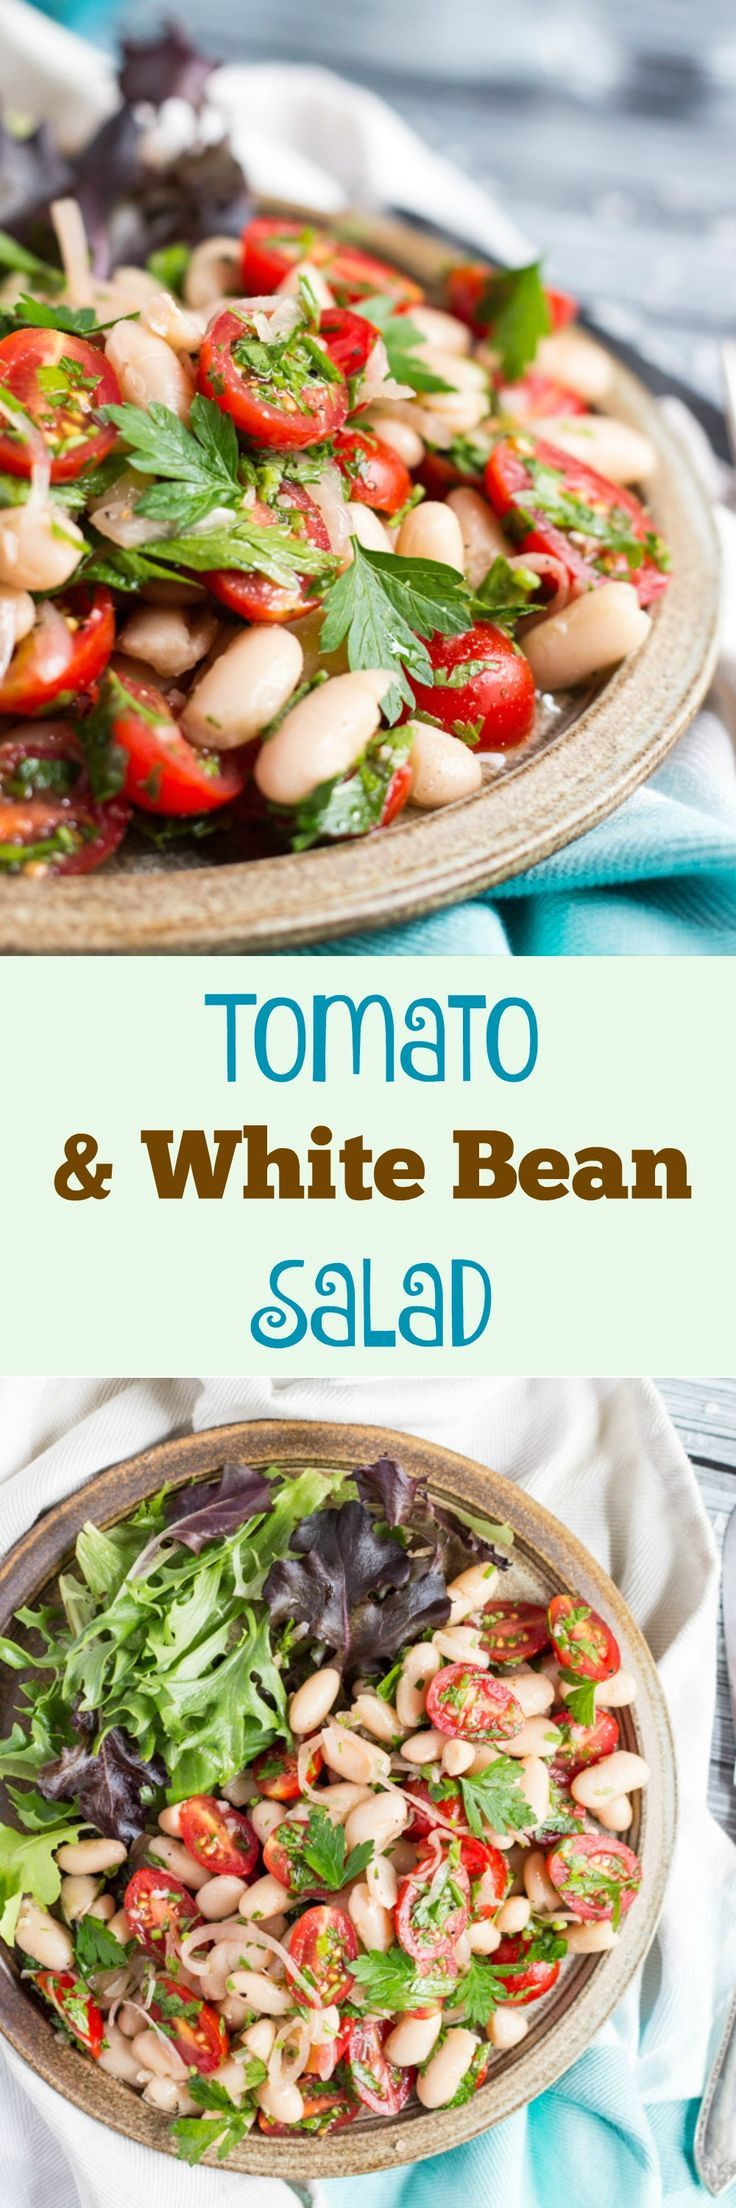 Tomato & White Bean Salad - An easy side dish that takes 10 minutes to make. Add some crusty bread and green leaves for a simple main meal.